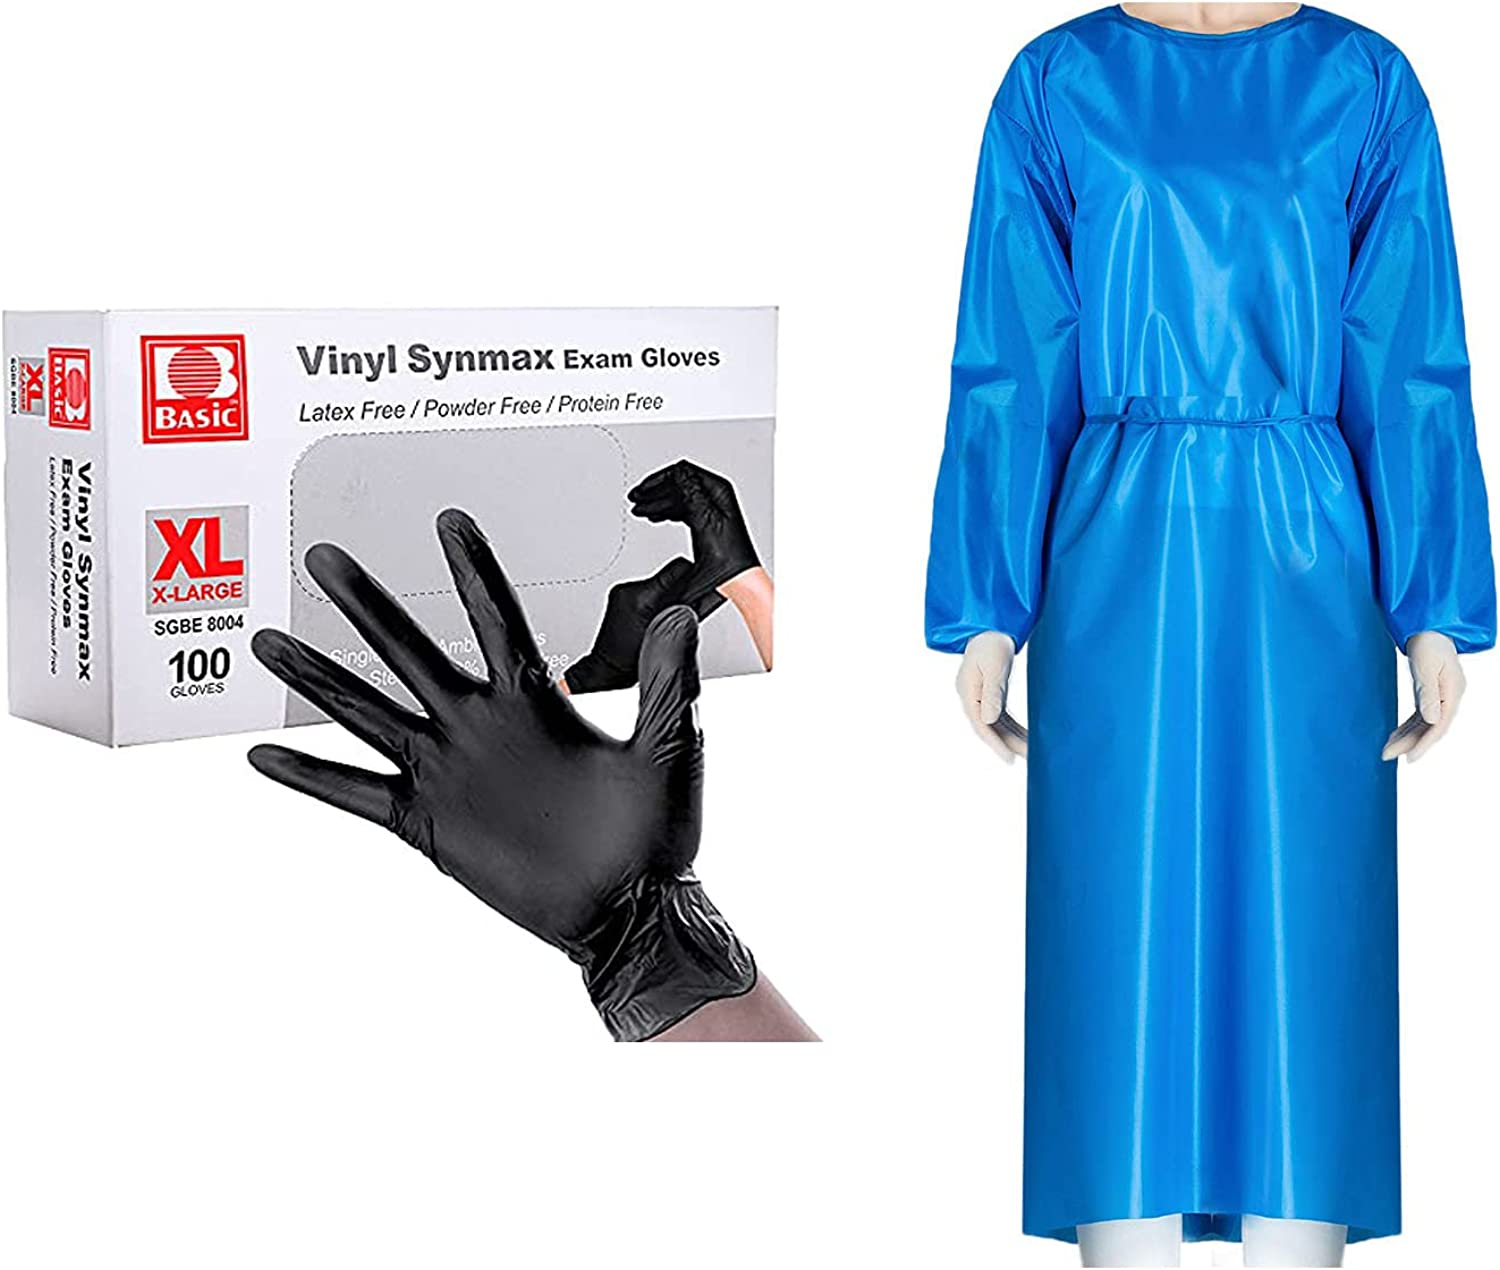 Disposable Gloves Ranking TOP10 Black Fixed price for sale Latex-Free Exam Vinyl Glo Powder-Free